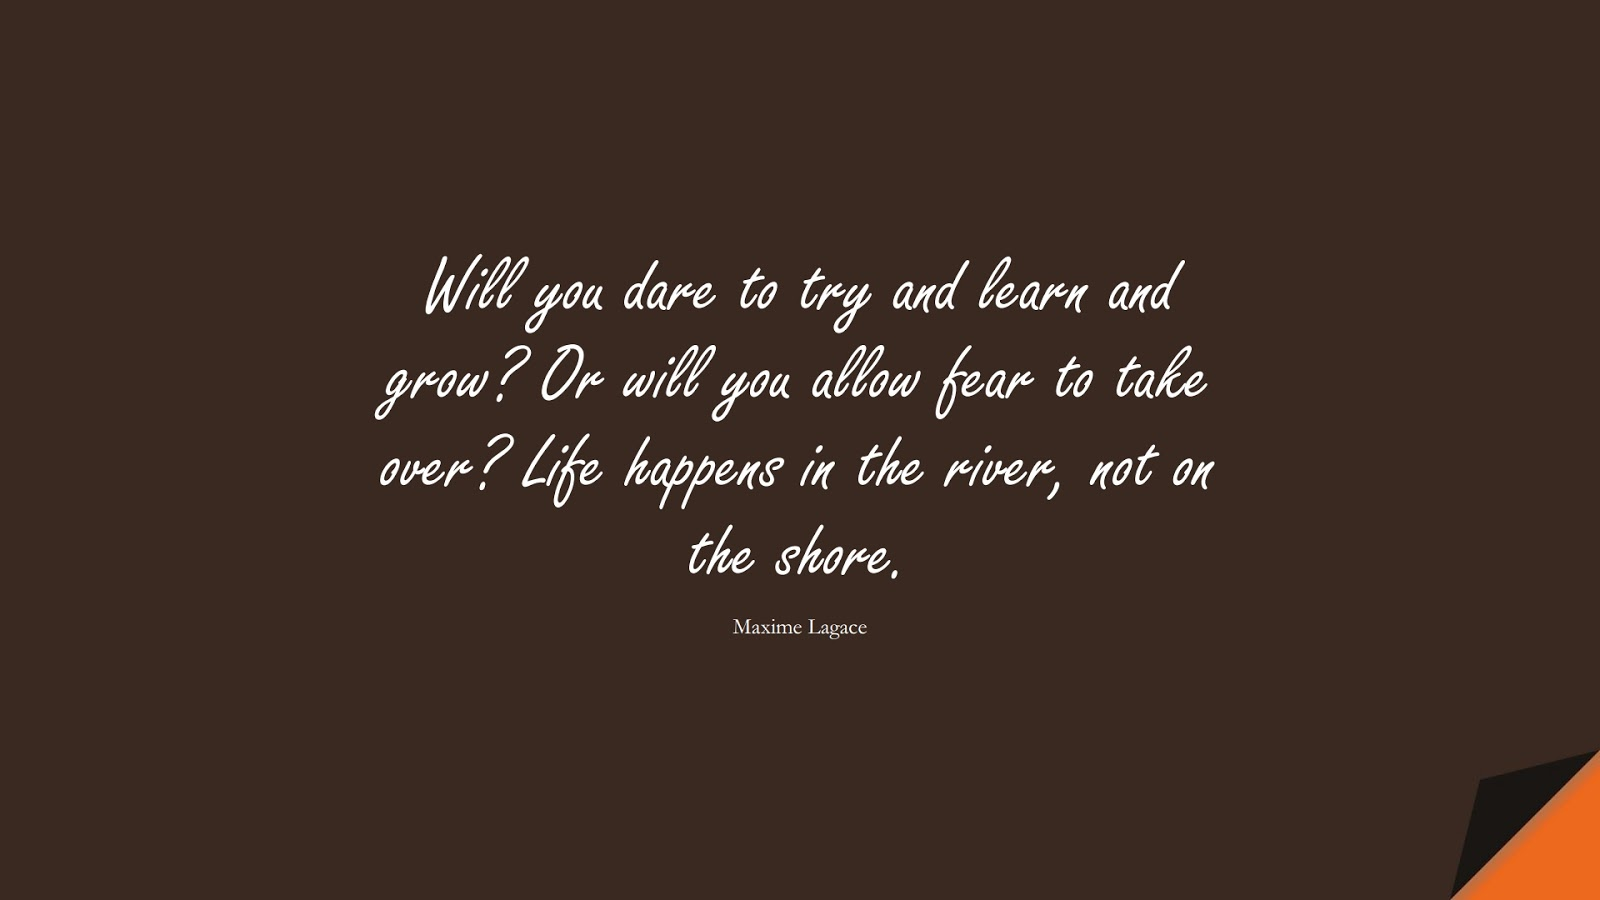 Will you dare to try and learn and grow? Or will you allow fear to take over? Life happens in the river, not on the shore. (Maxime Lagace);  #CourageQuotes